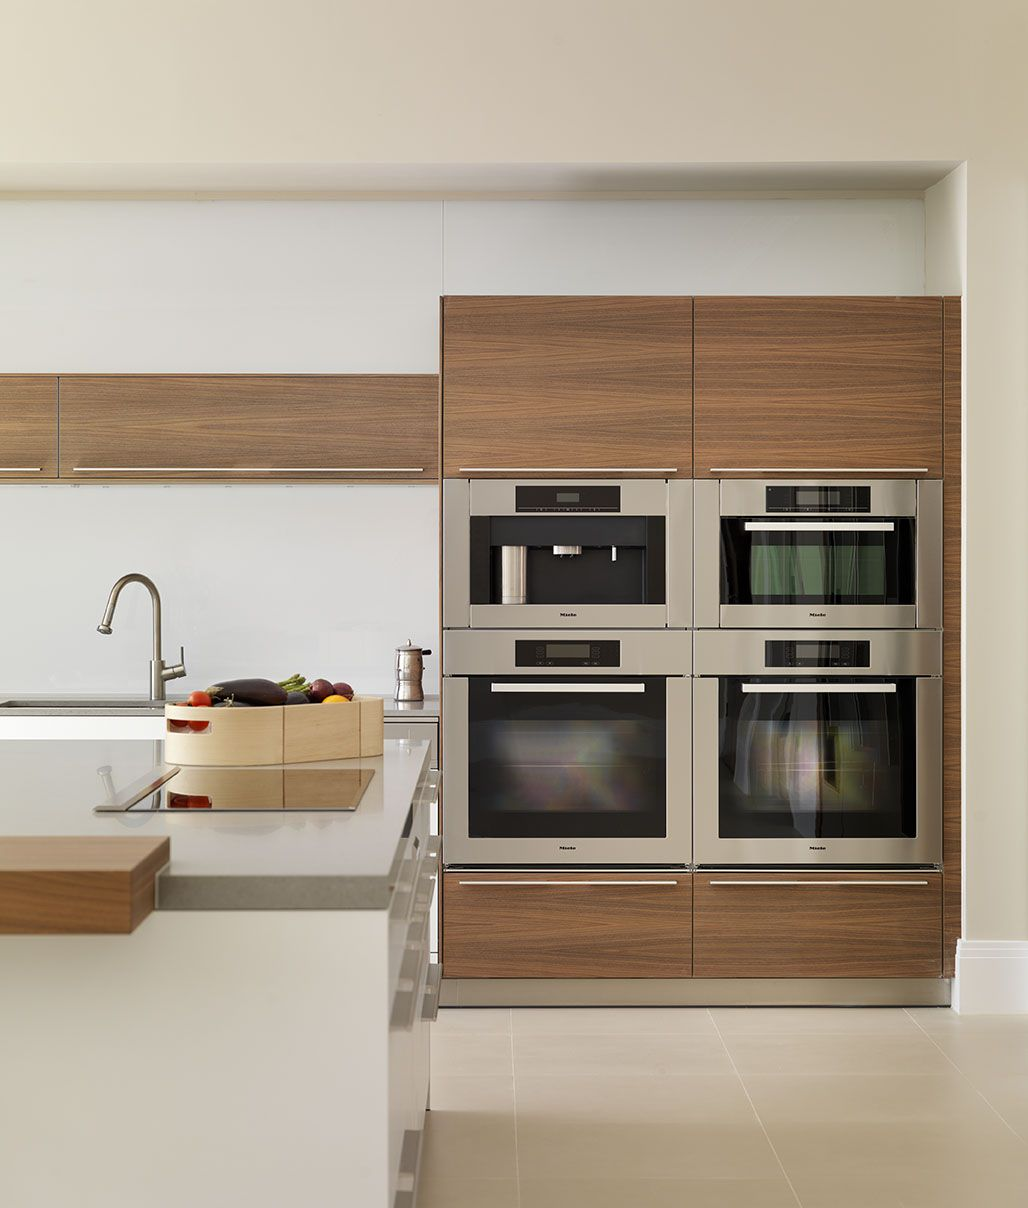 Miele Cocinas Contemporary White And Wood Kitchen Block Of Miele Appliances